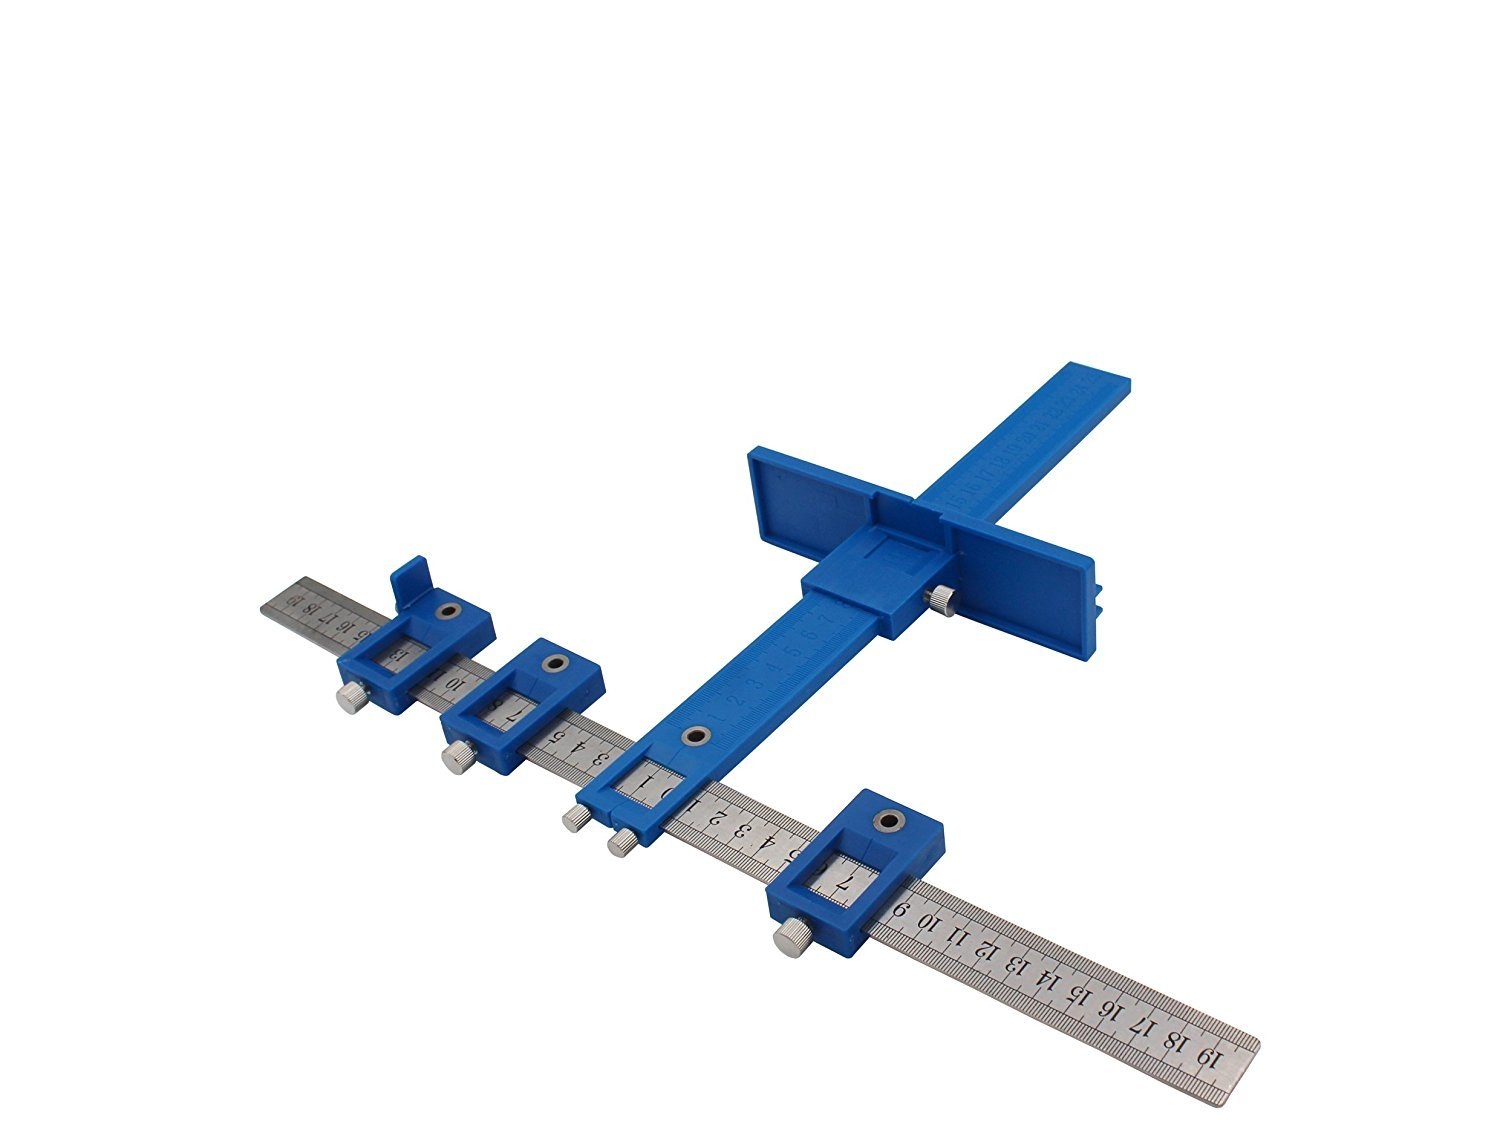 Power Tools Punch Locator, Drill Guide Sleeve Cabinet Hardware Jig/Template Wood Drilling Dowelling for Installation of Handles, Knobs on Doors and Drawer Pull.